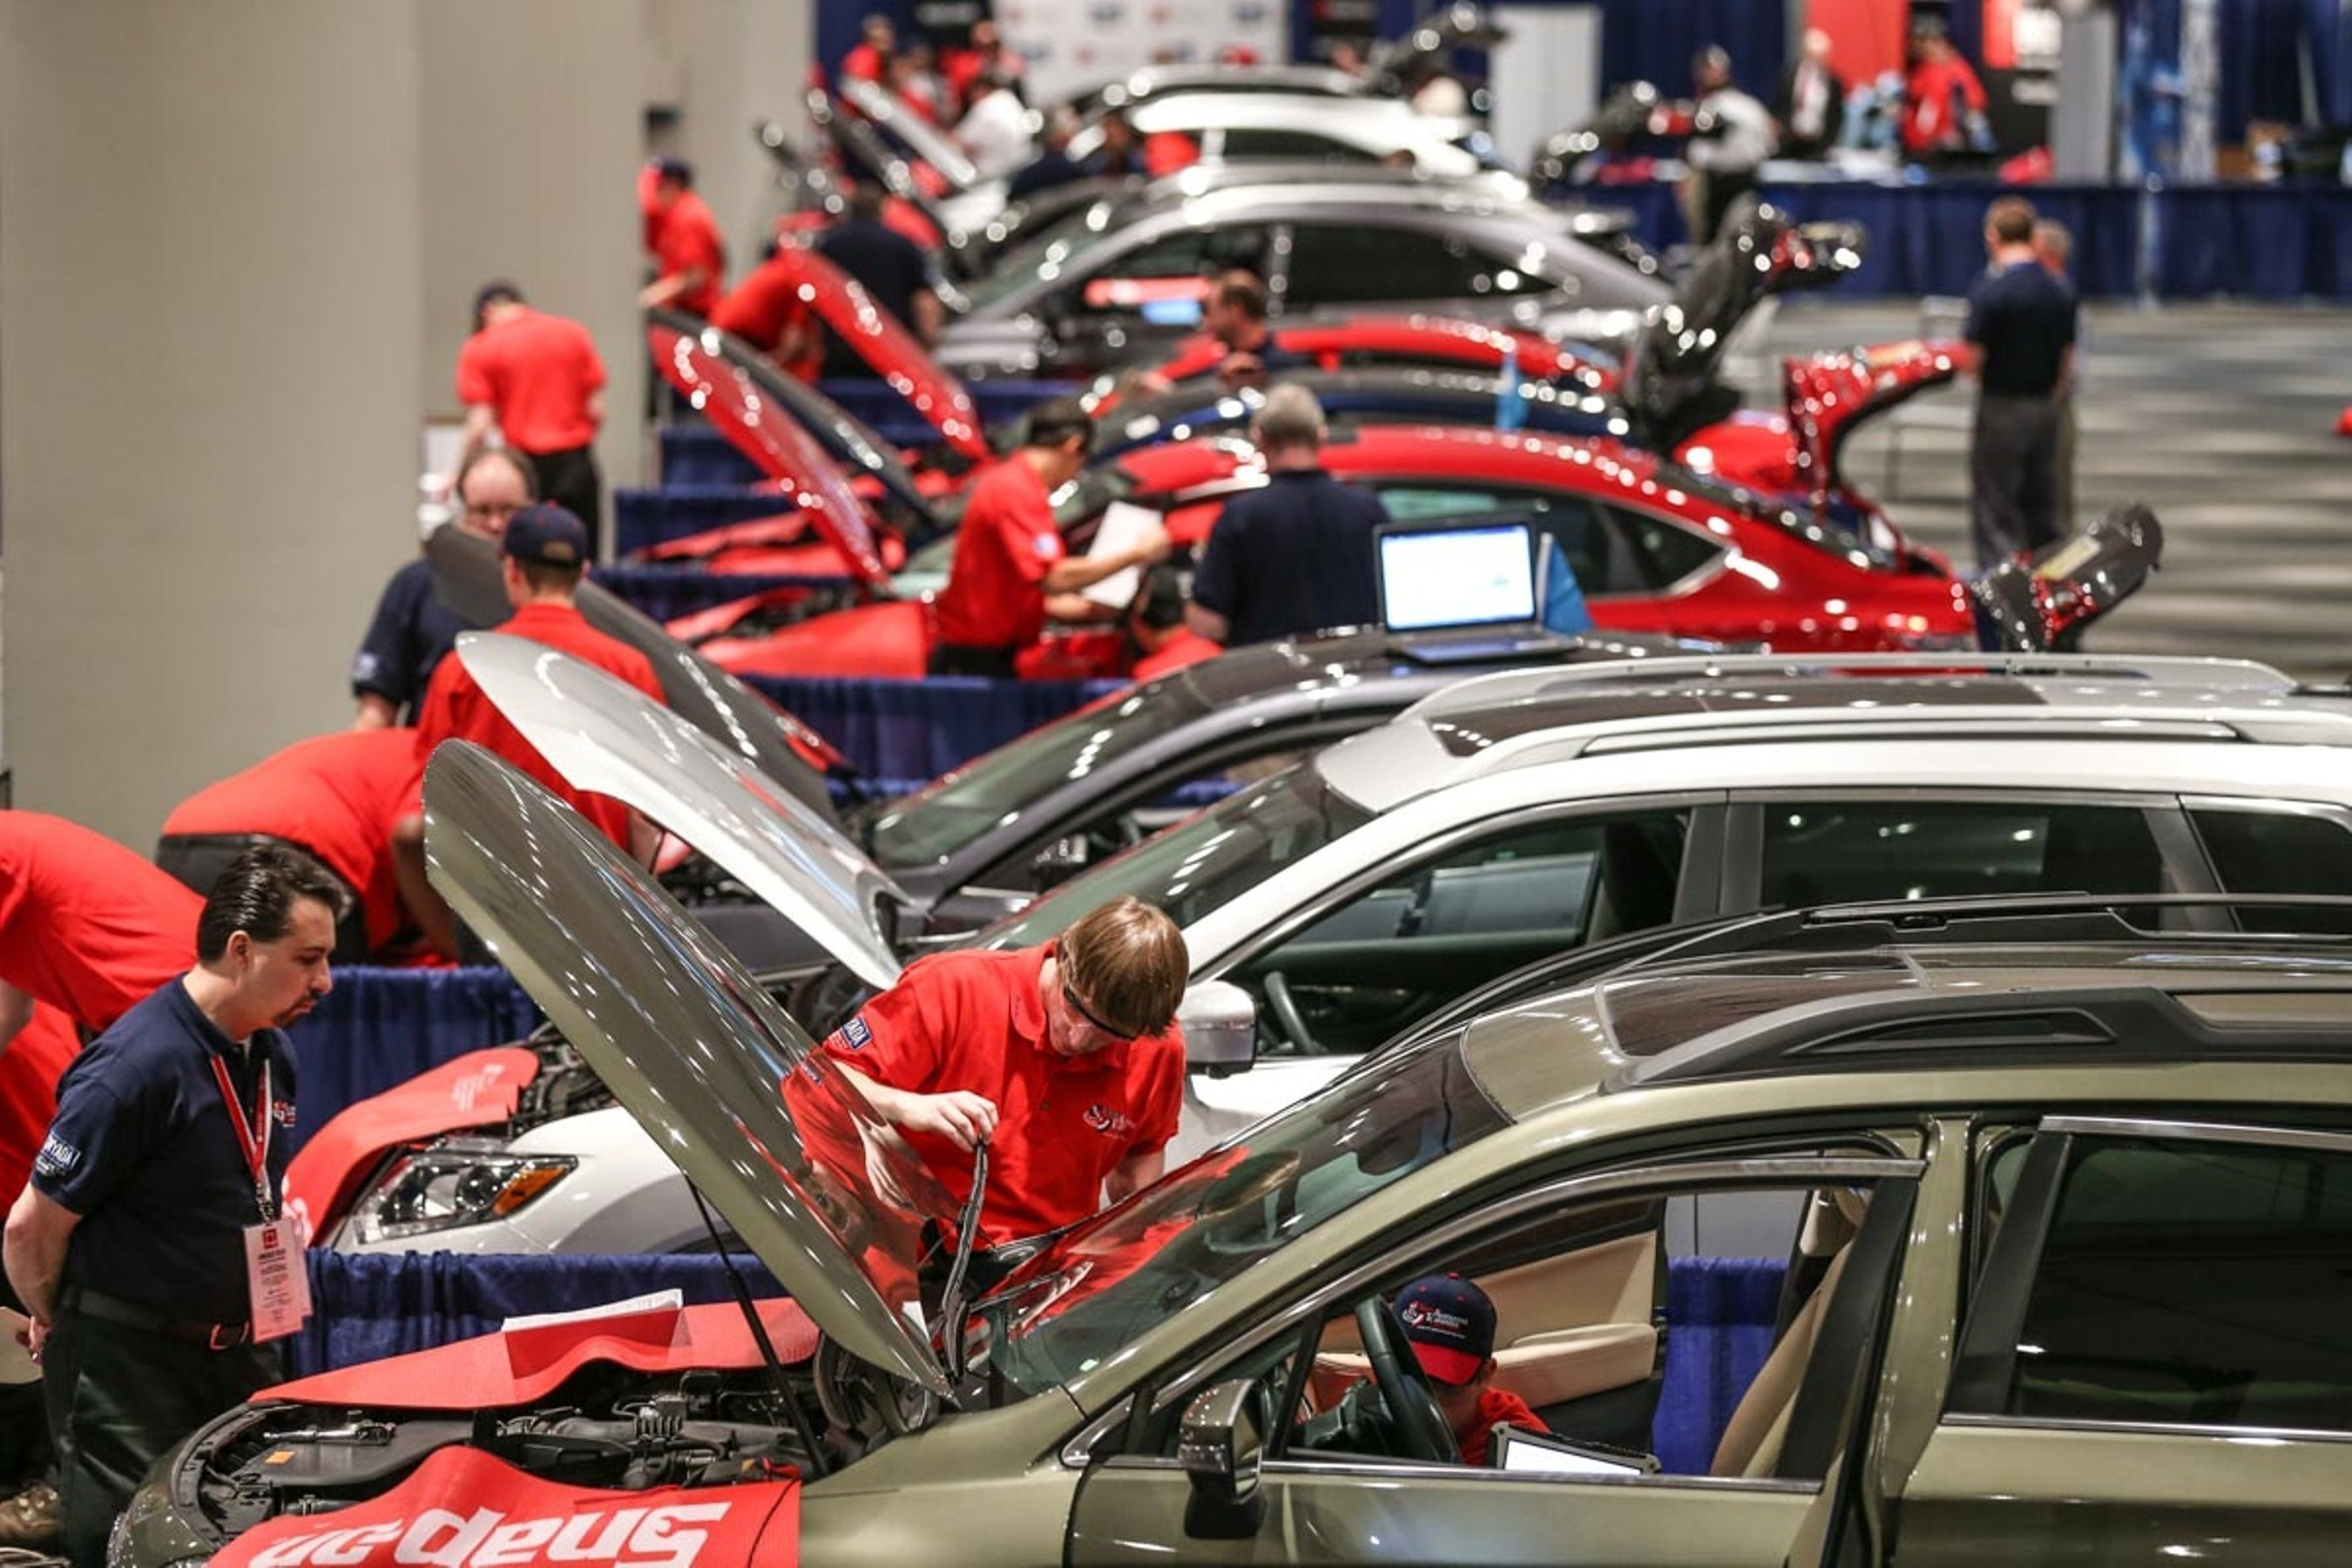 High school students from across the country compete to become America's Top Technician at the 2015 National Automotive Technology Competition.